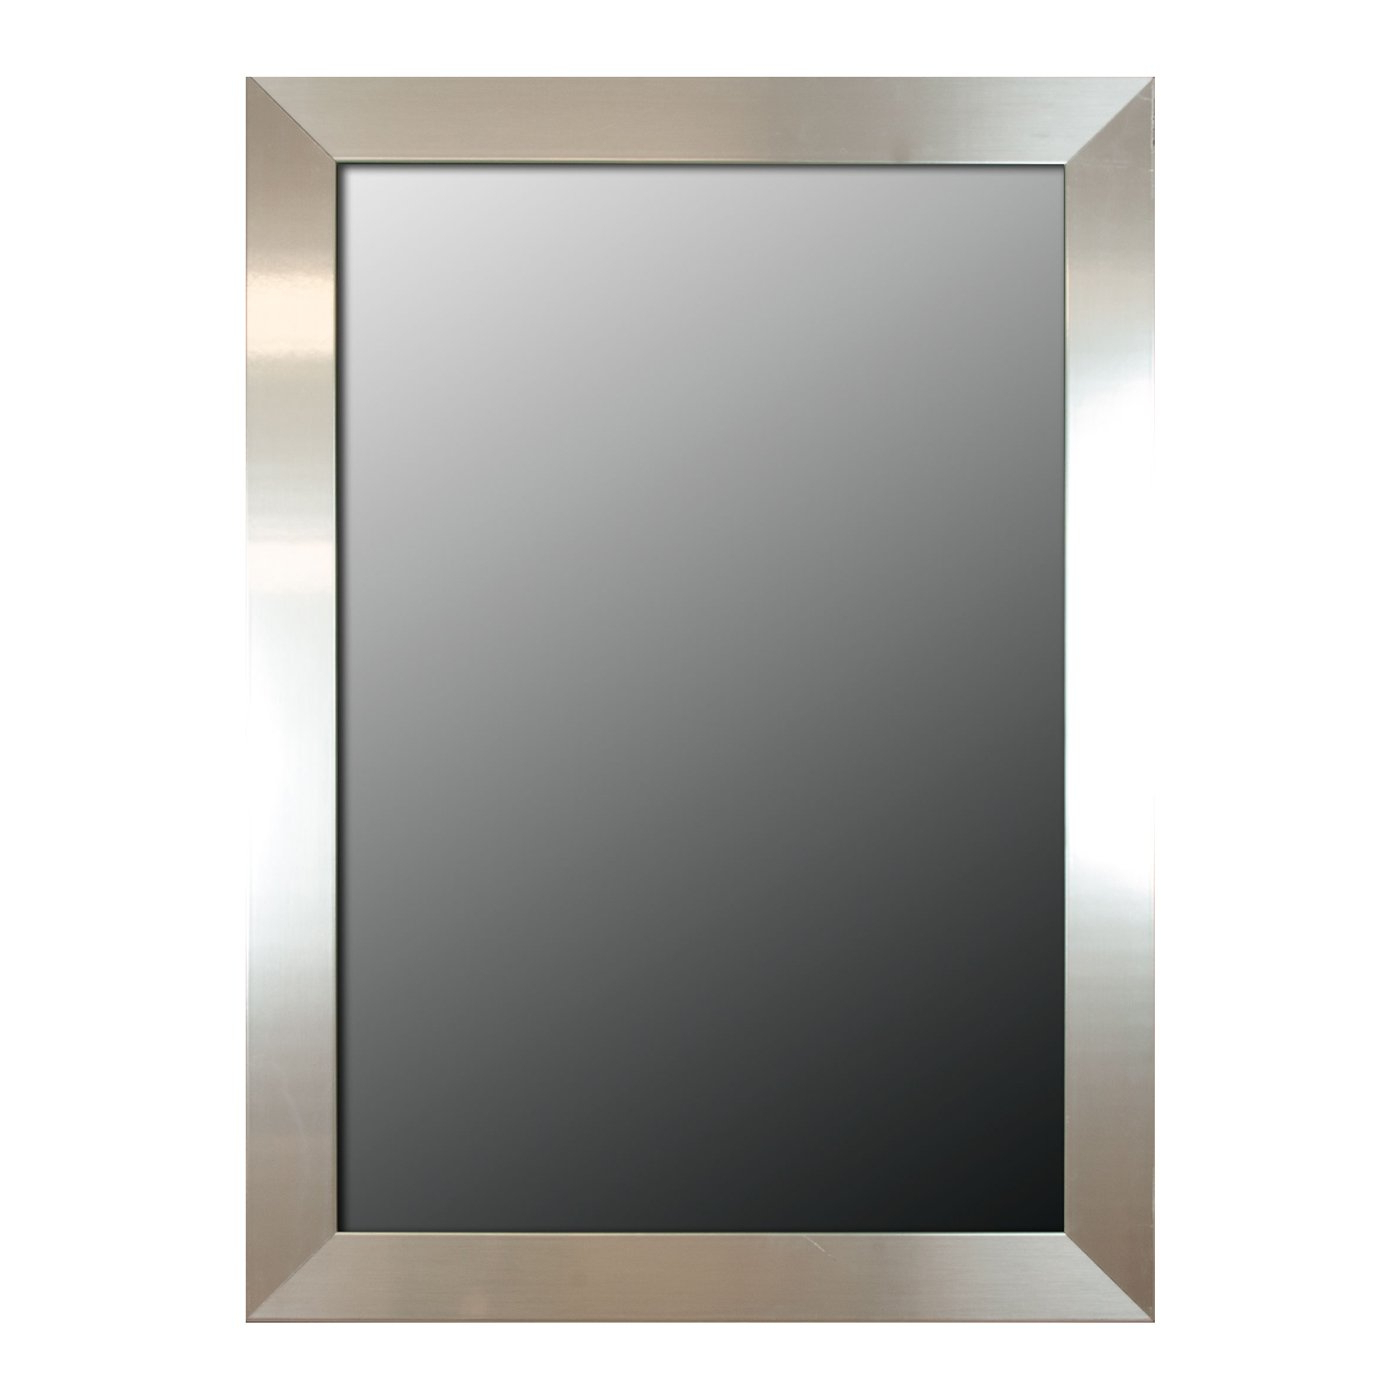 Preferred Hitchcock Butterfield 8067000 8067 2Nd Look Stainless Flat Framed Wall Mirror Within Flat Wall Mirrors (View 19 of 20)